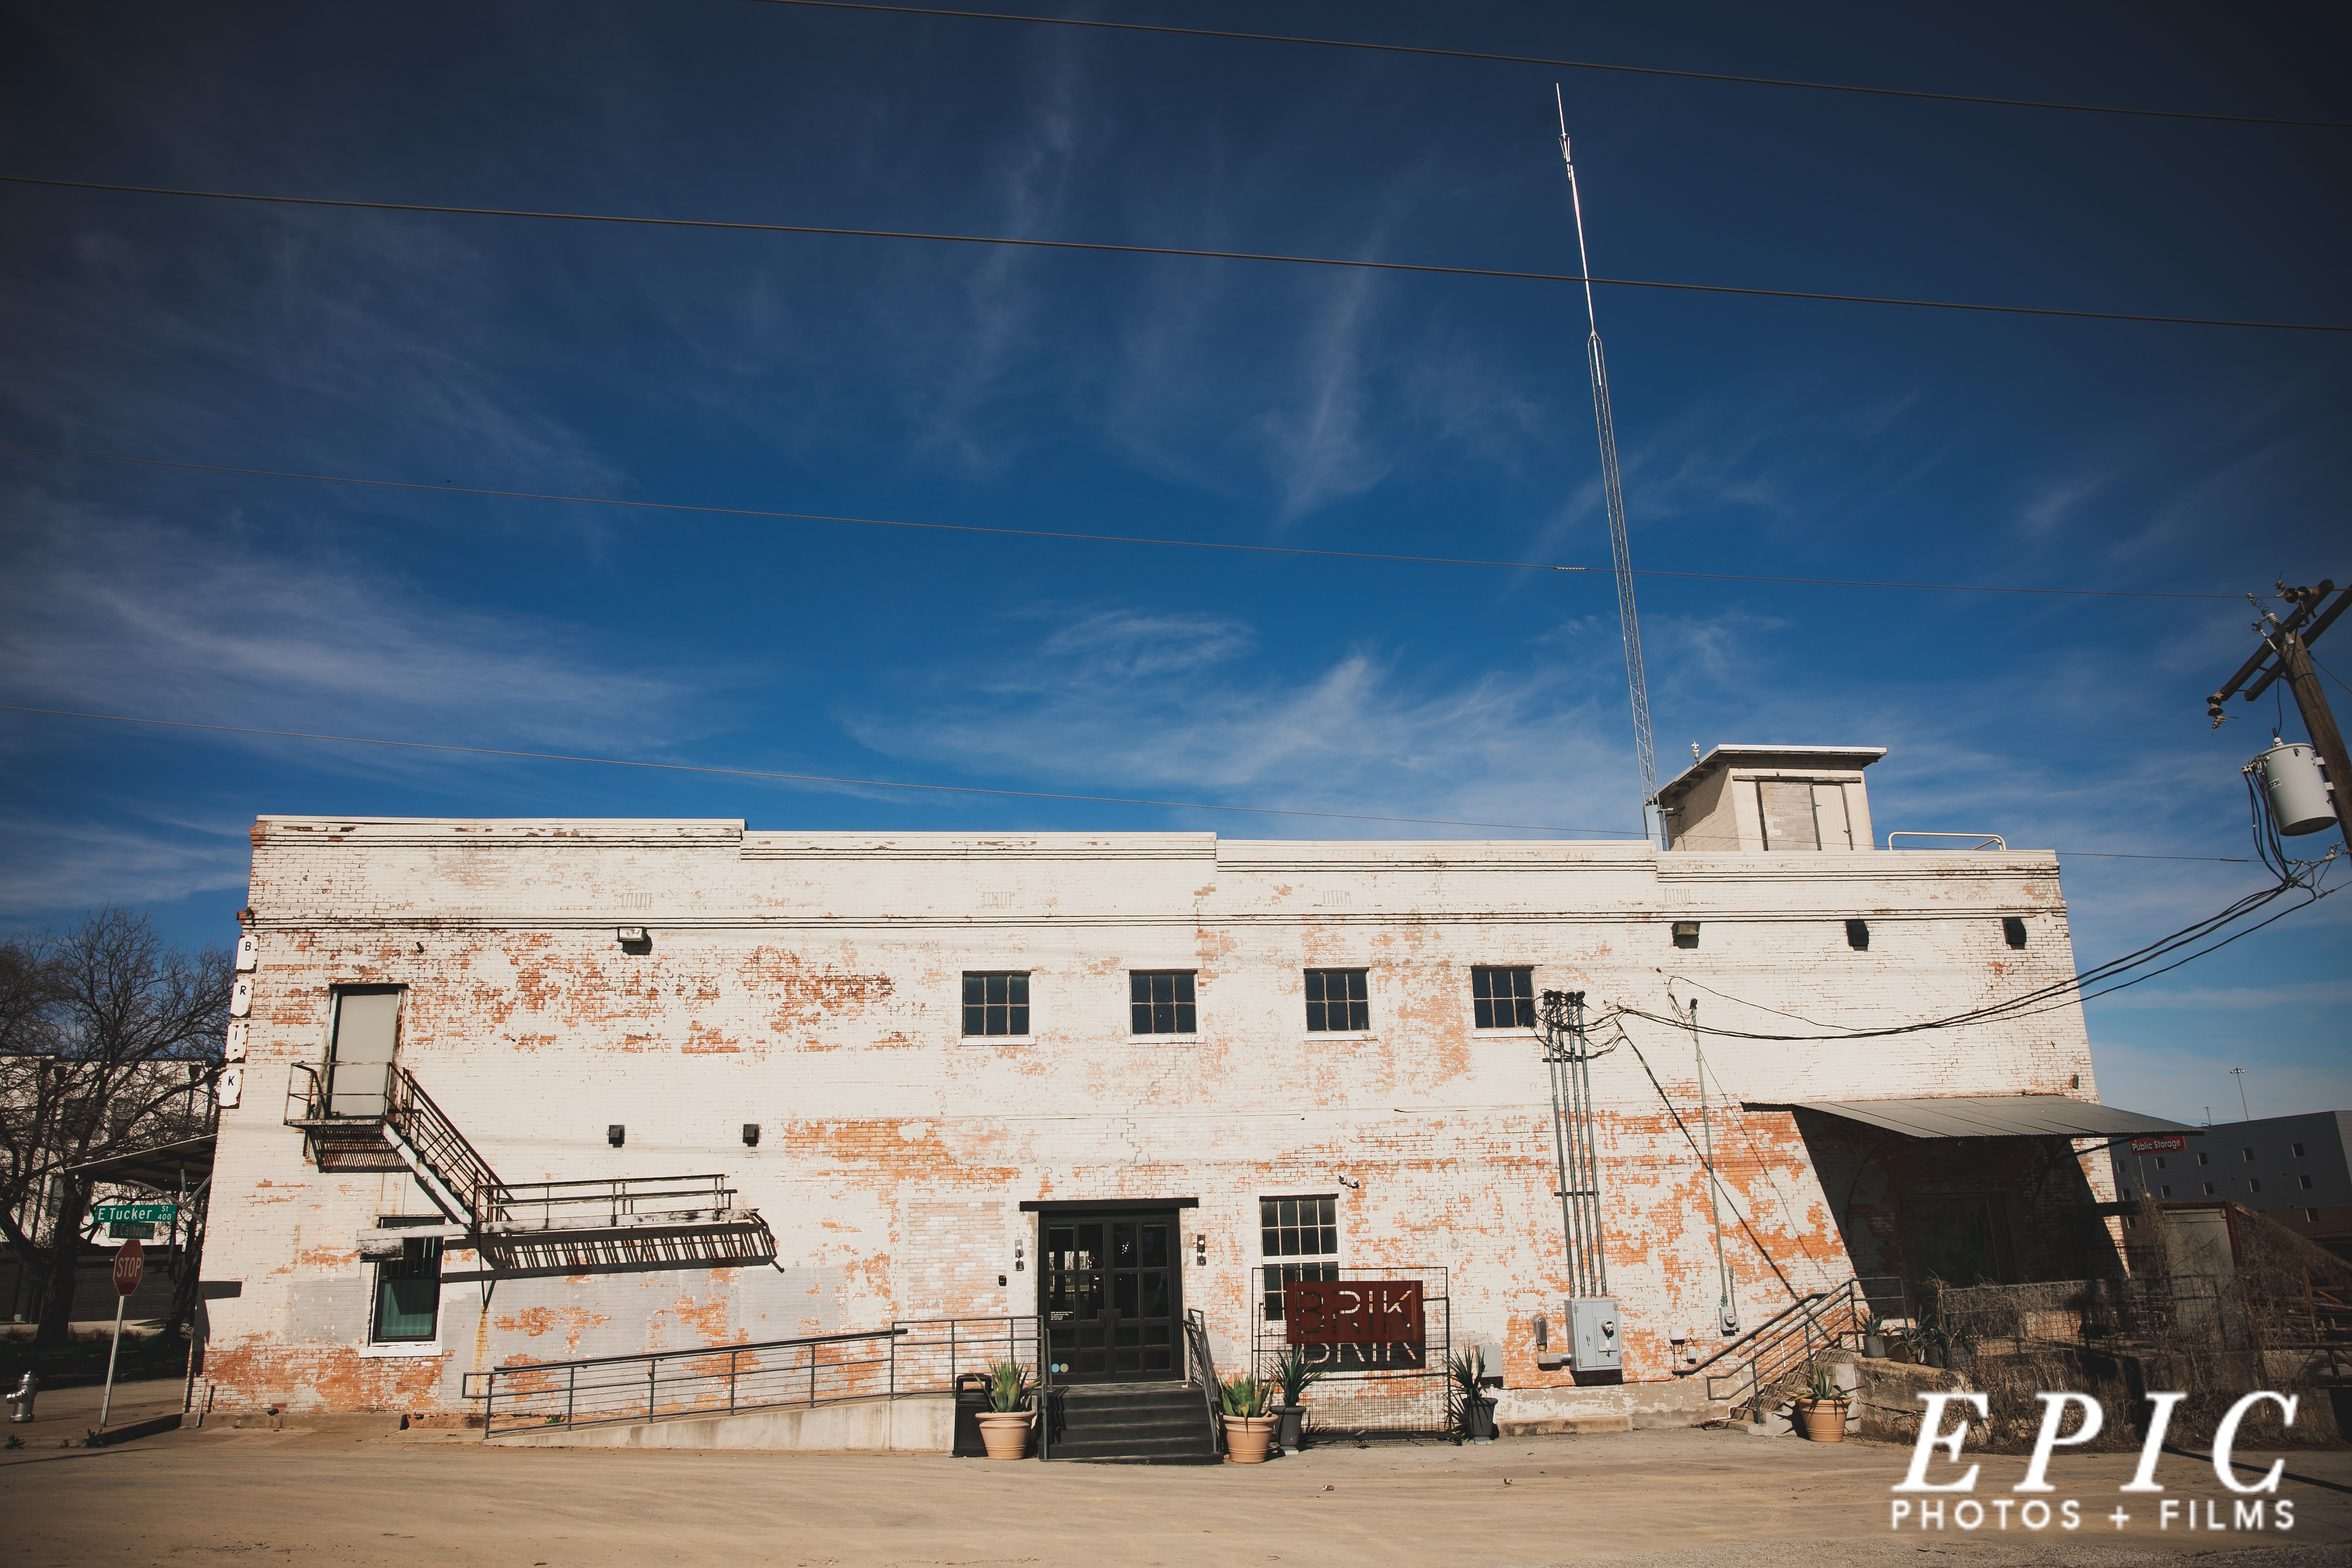 Outdoor shot showing the industrial vibe of The Brik Venue, in Ft. Worth, Texas